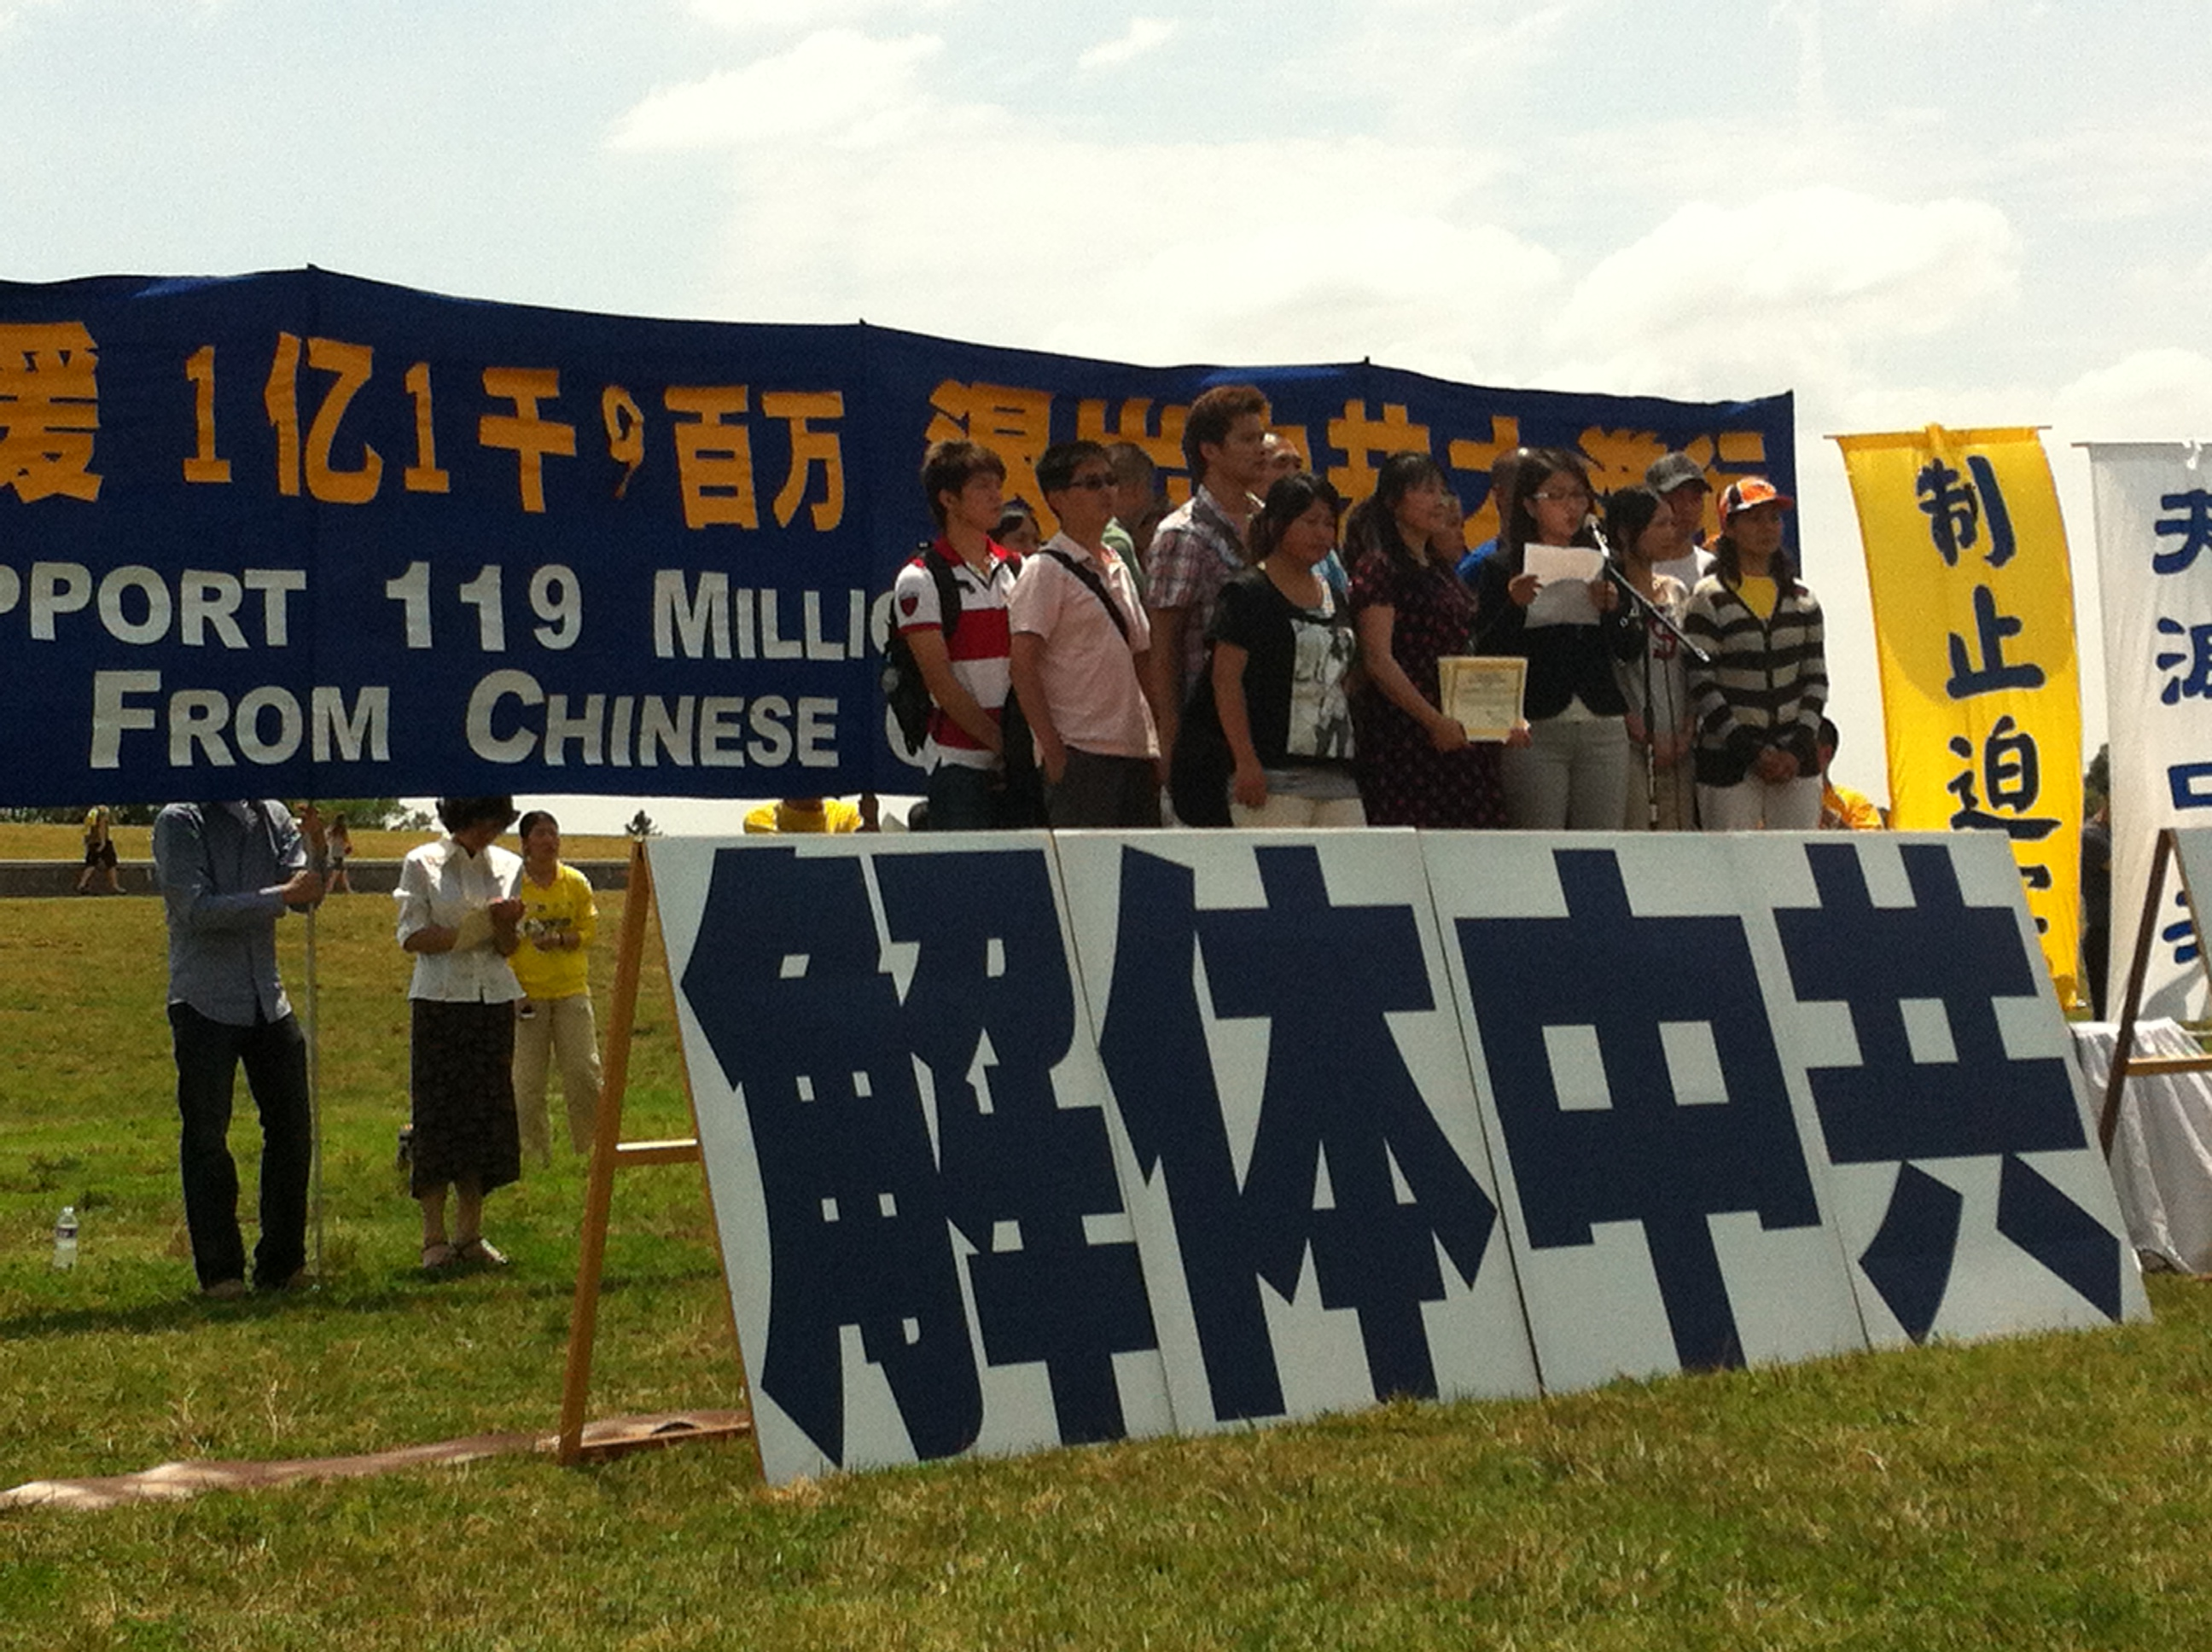 China: 120 Million Leave Chinese Communist Party (CCP) – Falun Gong Rally in DC